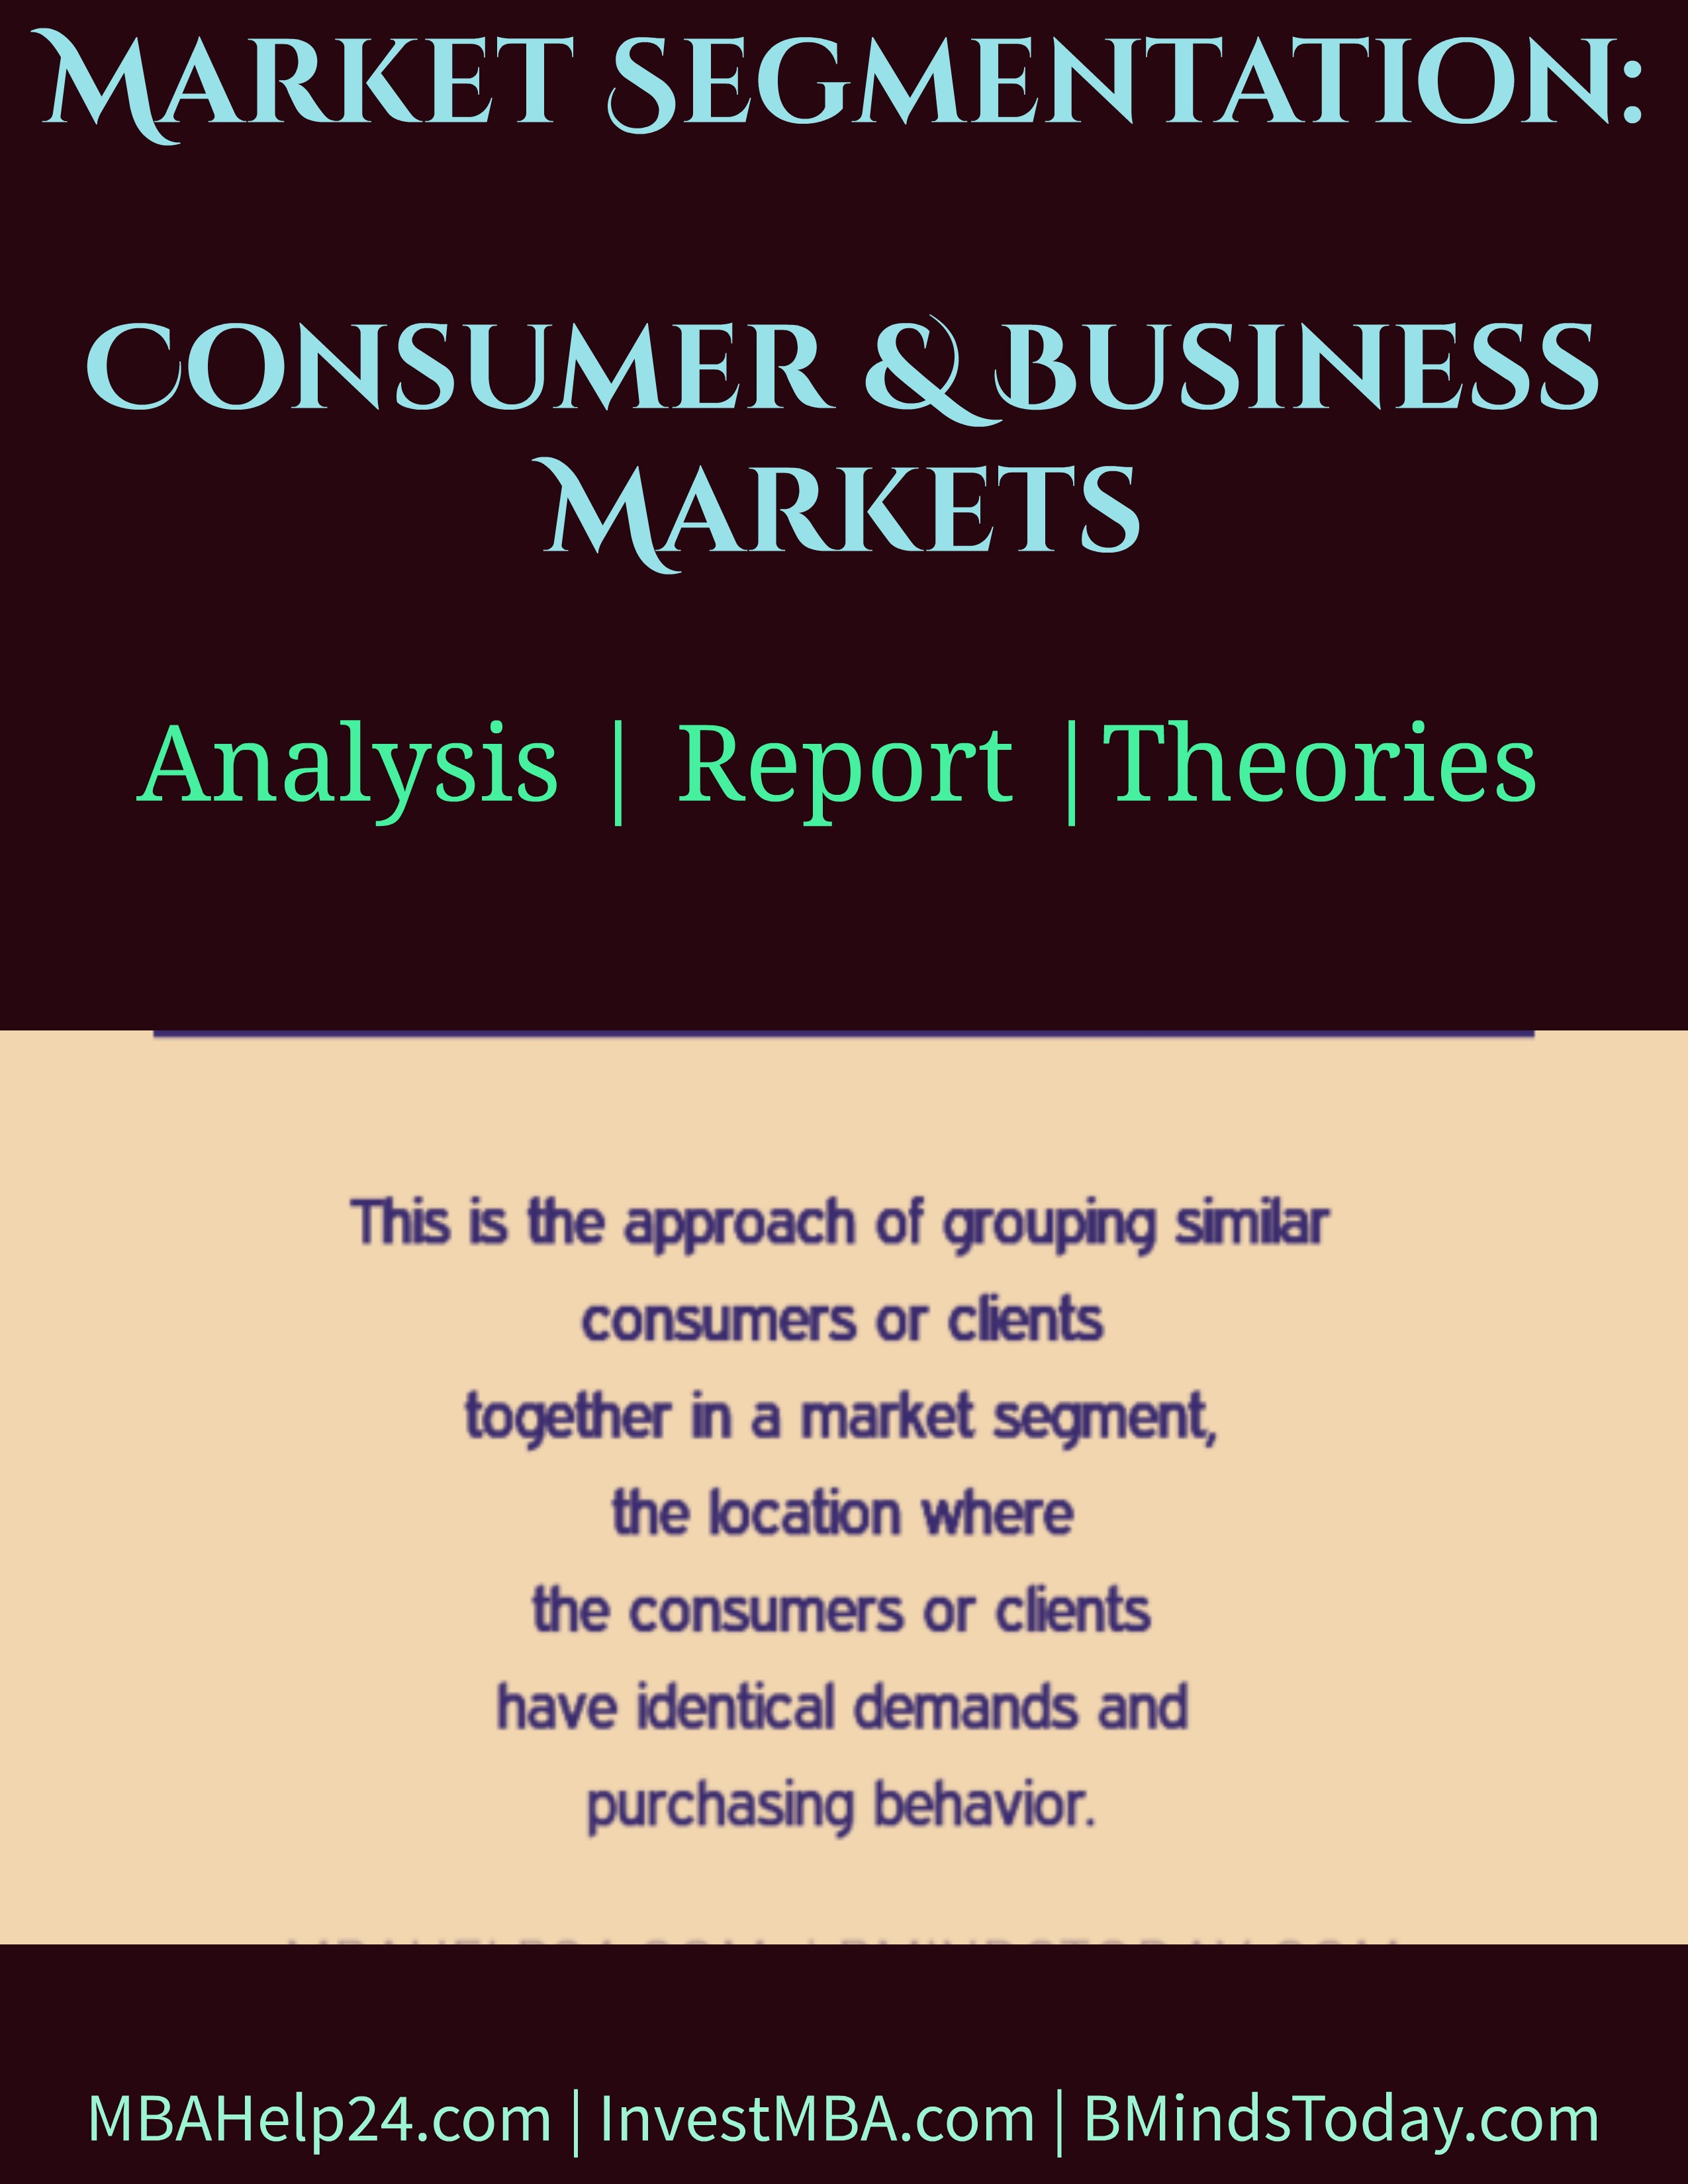 Market Segmentation | Consumer & Business Markets market segmentation Market Segmentation: Consumer & Business Markets Market Segmentation Consumer Business Markets